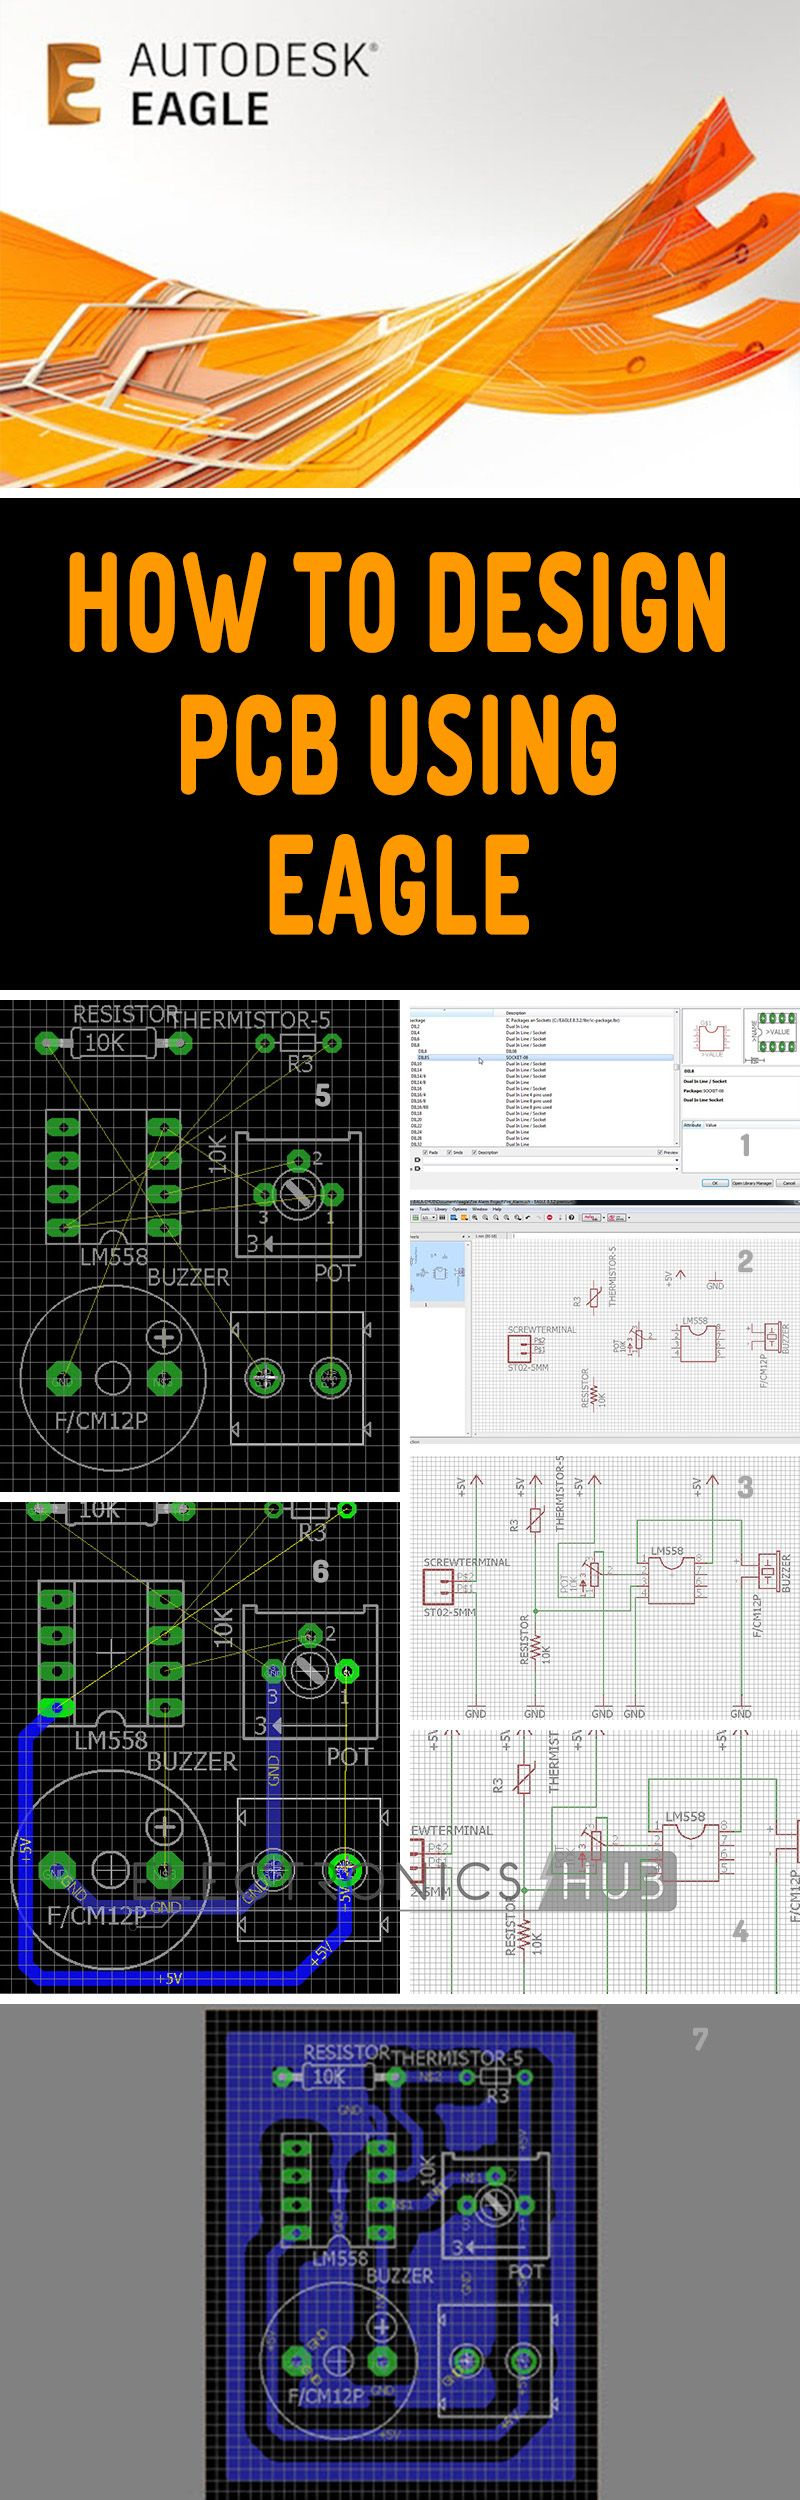 How to Design PCB using Eagle (Printed Circuit Board Layout ...